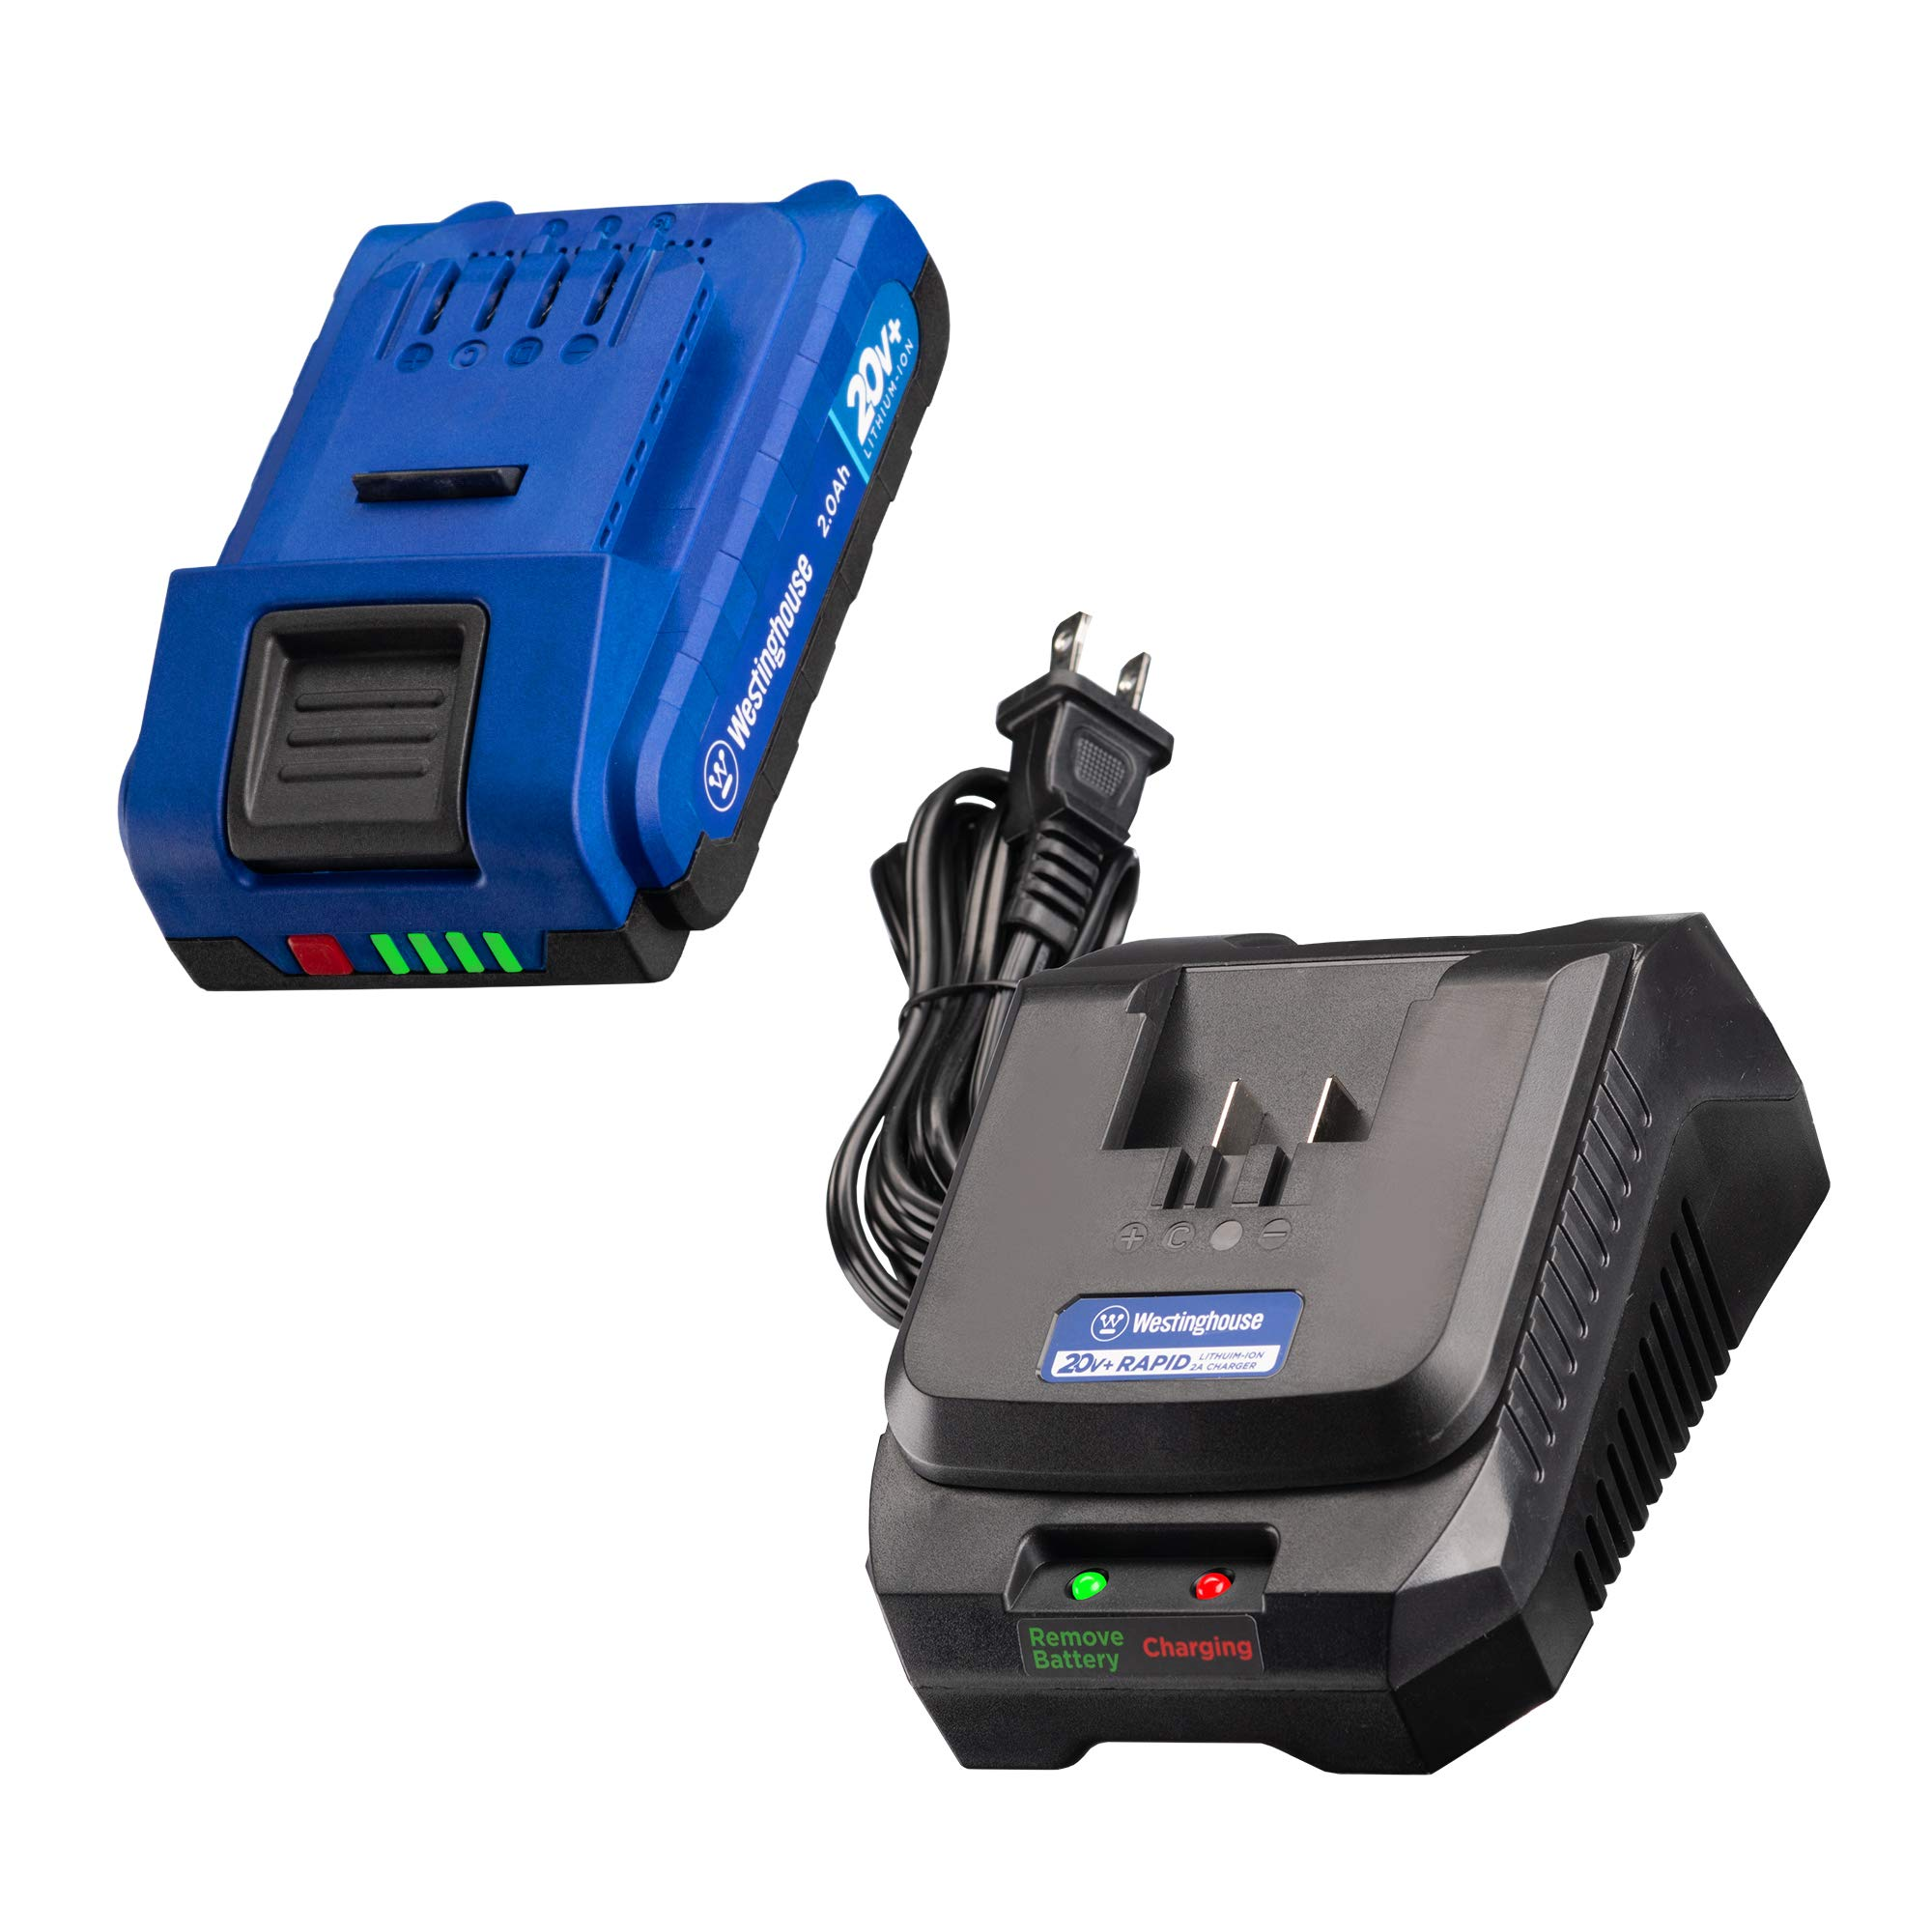 Westinghouse 20V 2.0 Ah Lithium-ion Battery and Rapid Charger for 20V+ Cordless Tools by Westinghouse